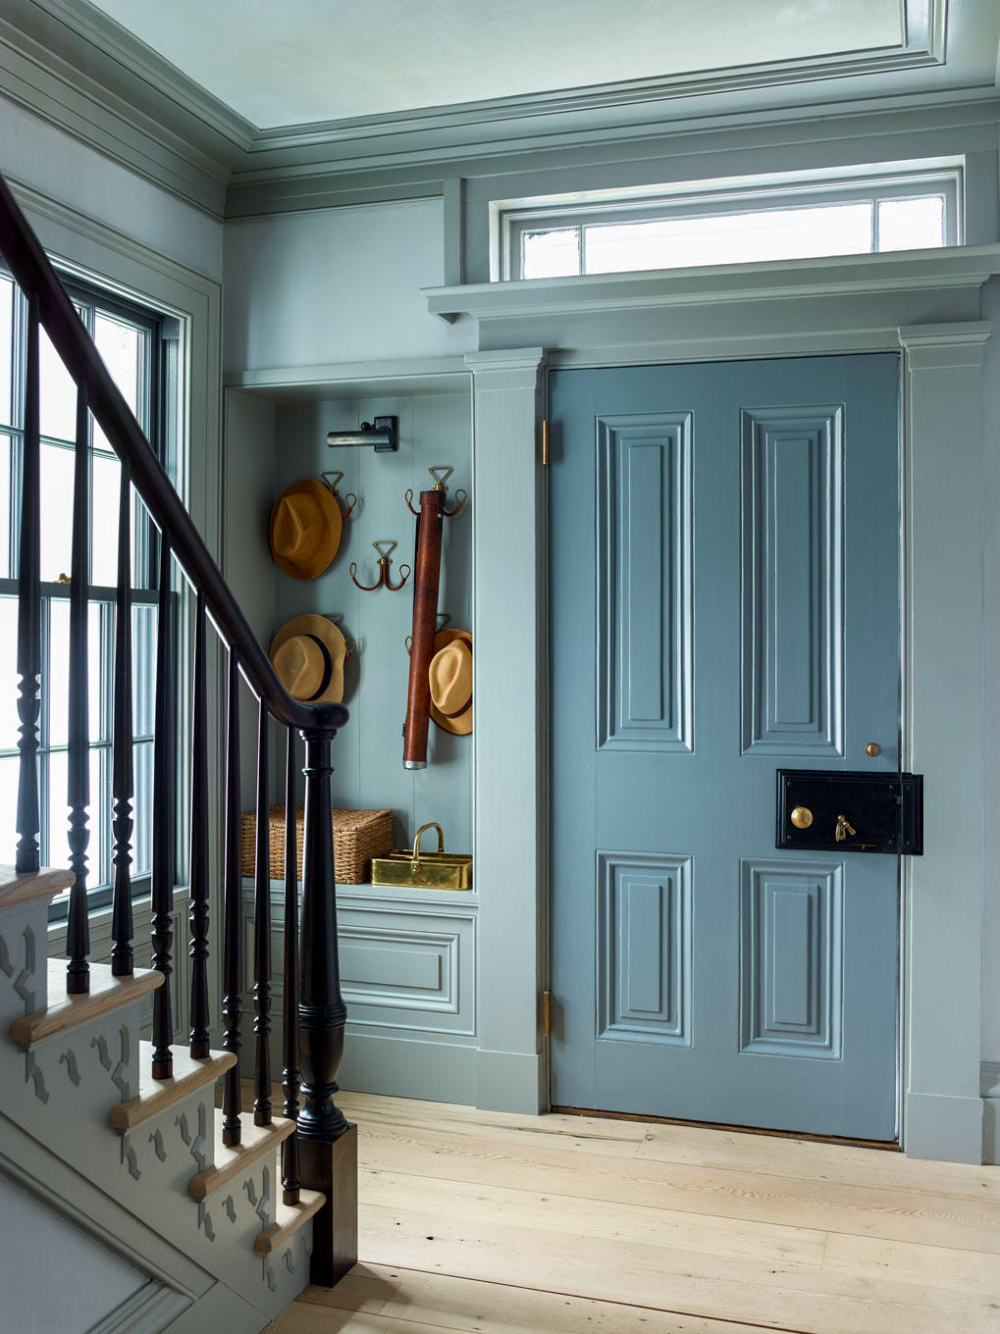 Sag Harbor House By P T Interiors With Images: A Sag Harbor Gem By Steven Gambrel - % (2020)